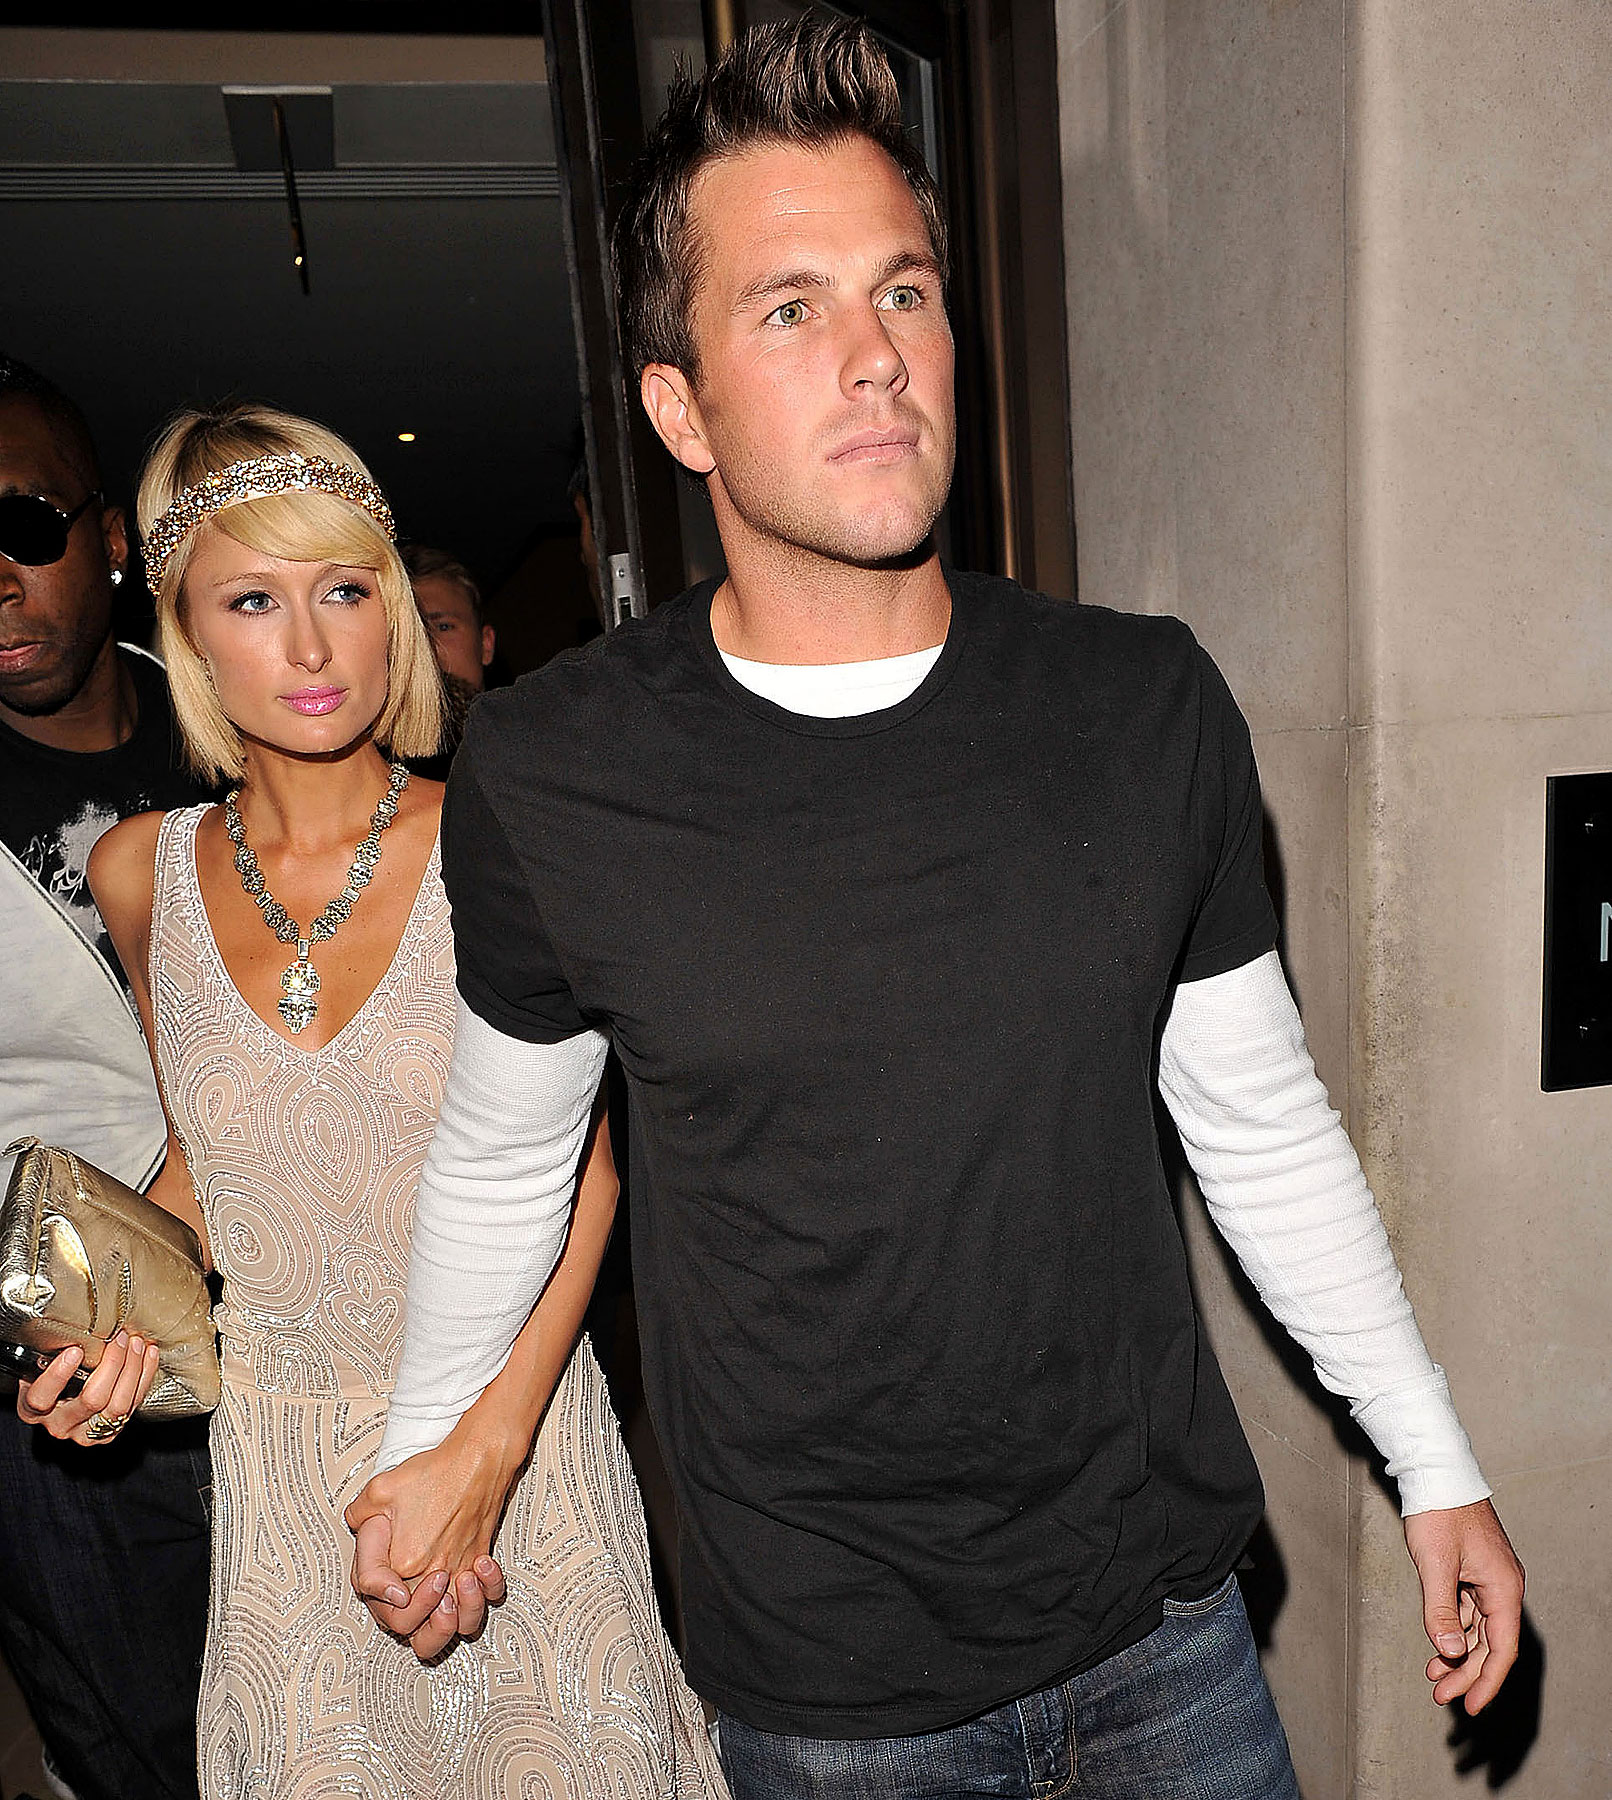 Paris Hilton And Doug Reinhardt Make Out, Get Kicked Out Of Party